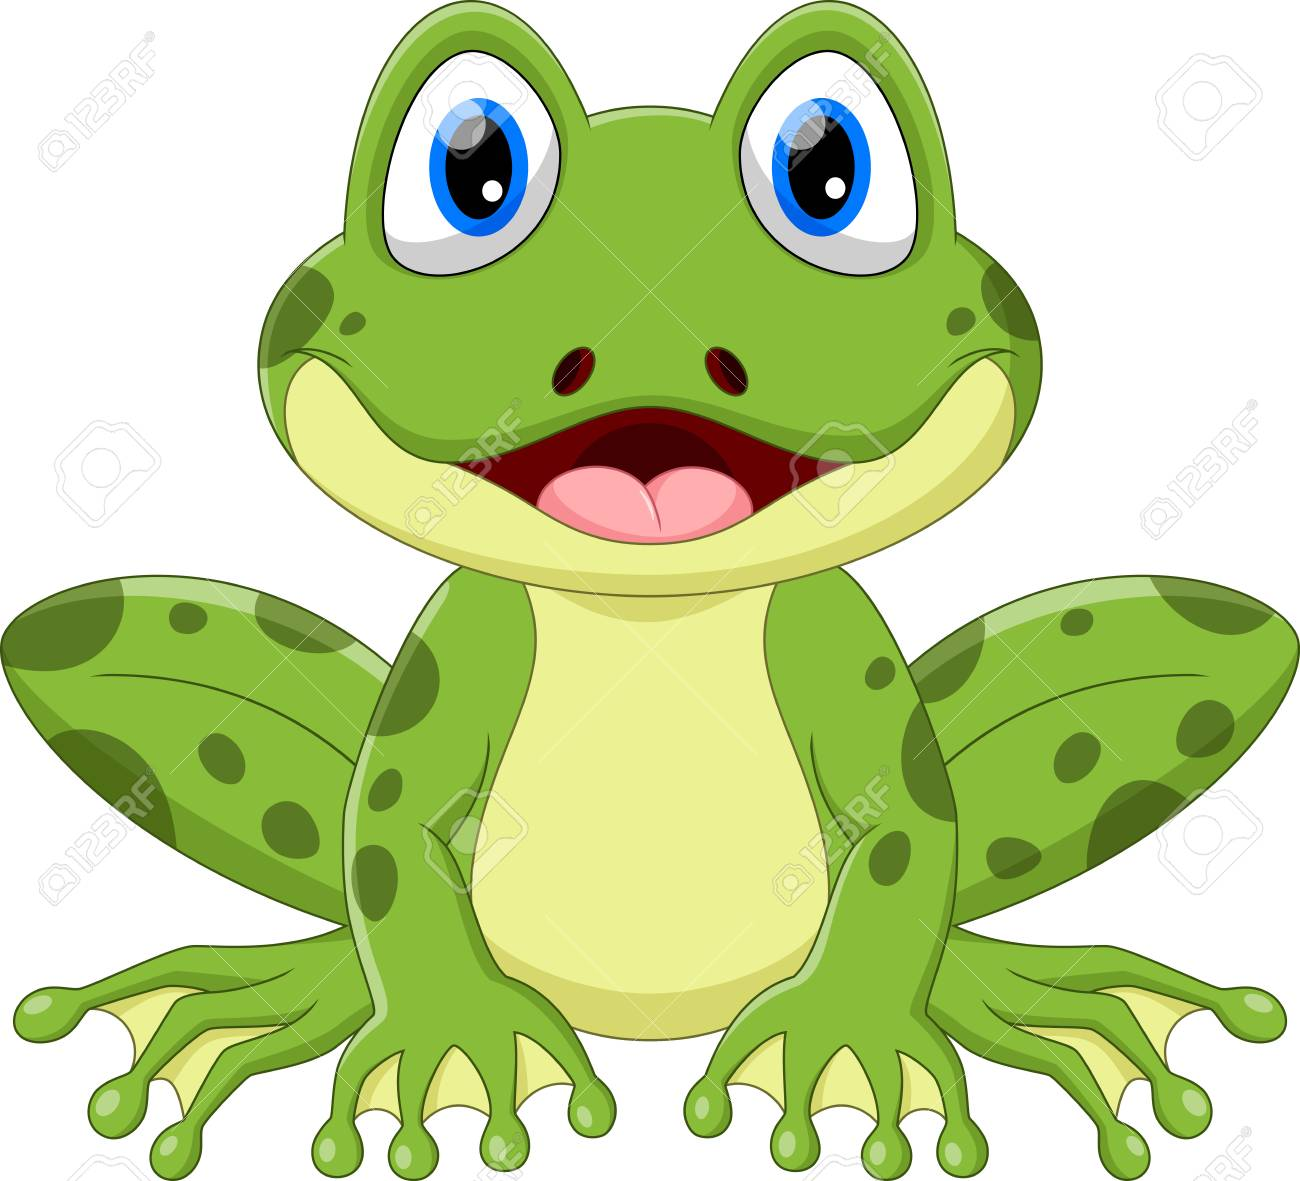 Vector illustration of cute frog cartoon isolated on white background. - 100122787